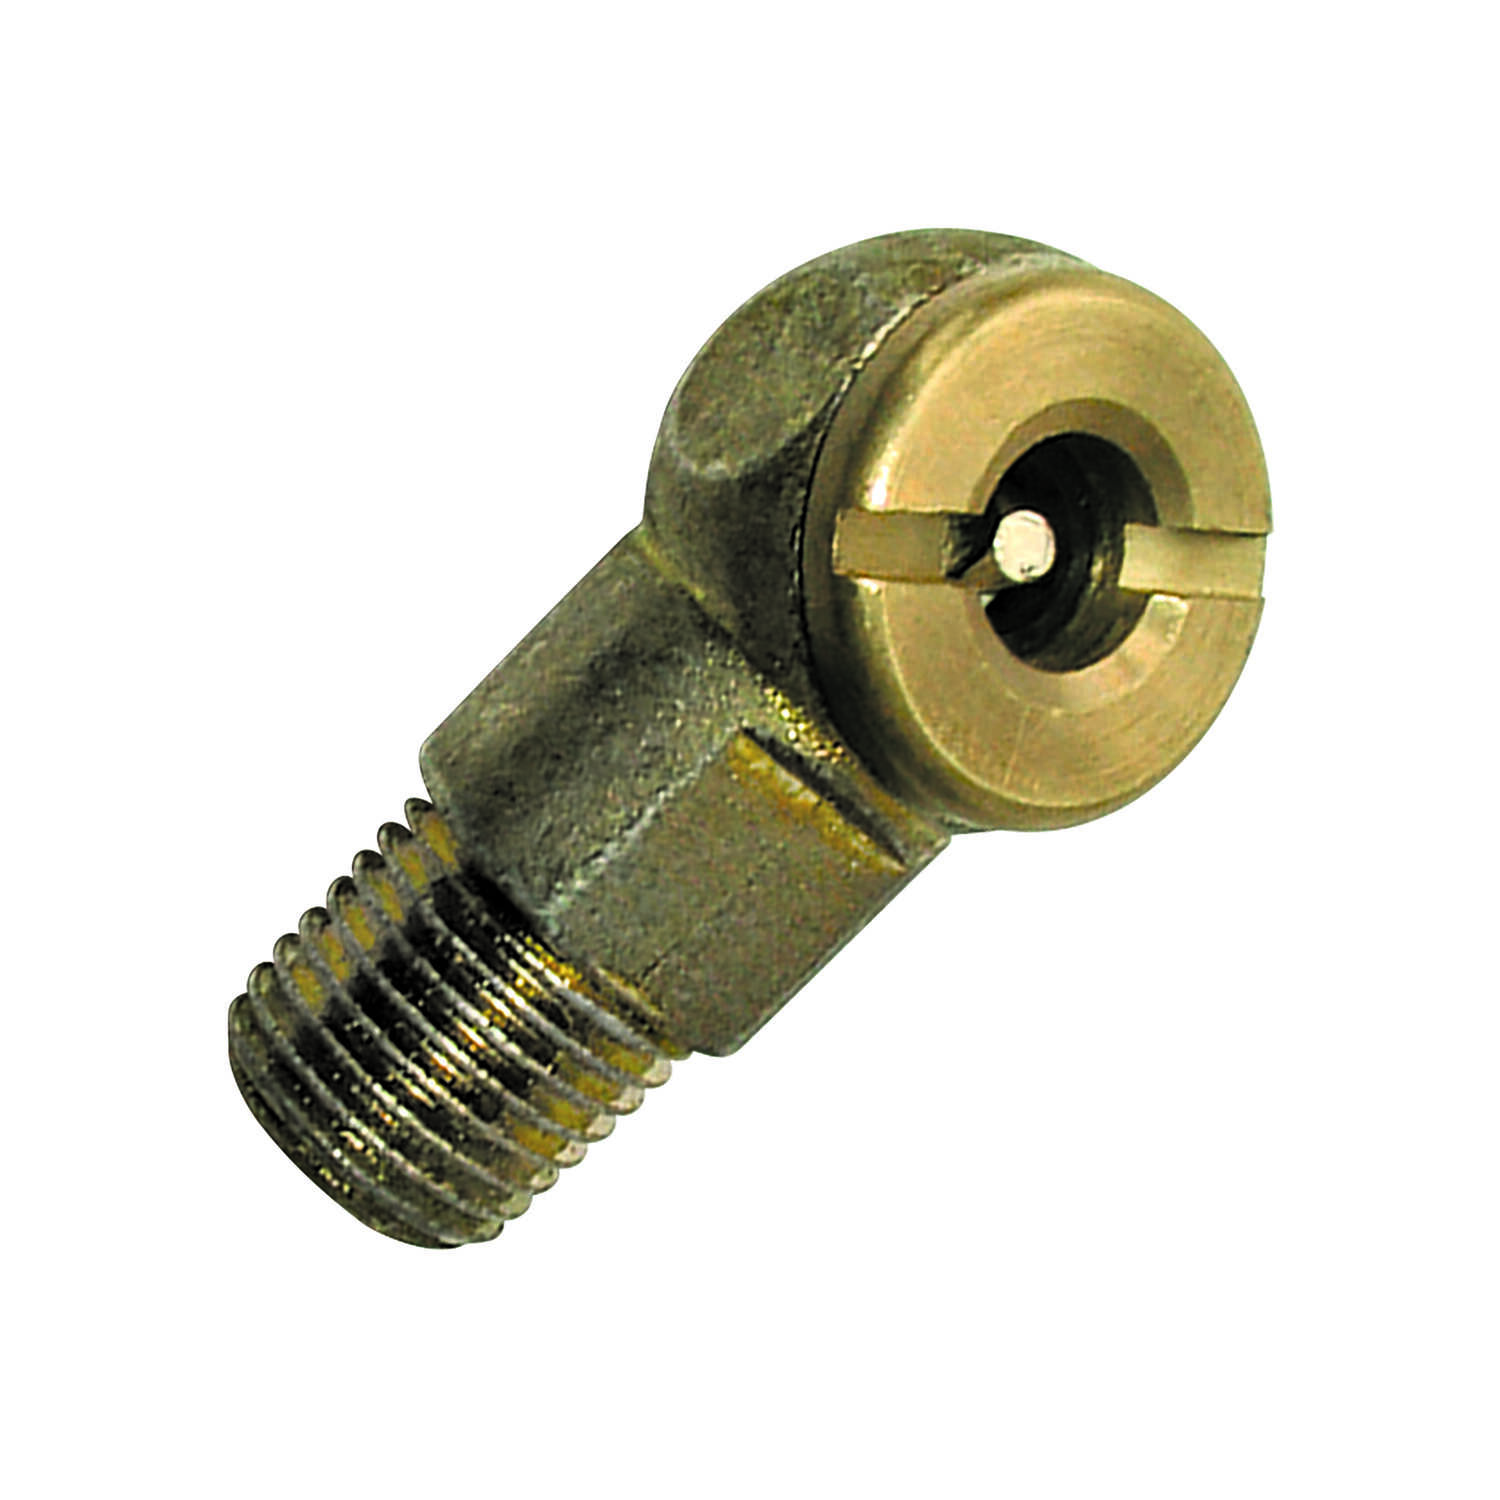 Tru-Flate  Brass  Air Line Chuck  1/4  1/4 in. Male  NPT   1 pc. NPT  Male  1/4